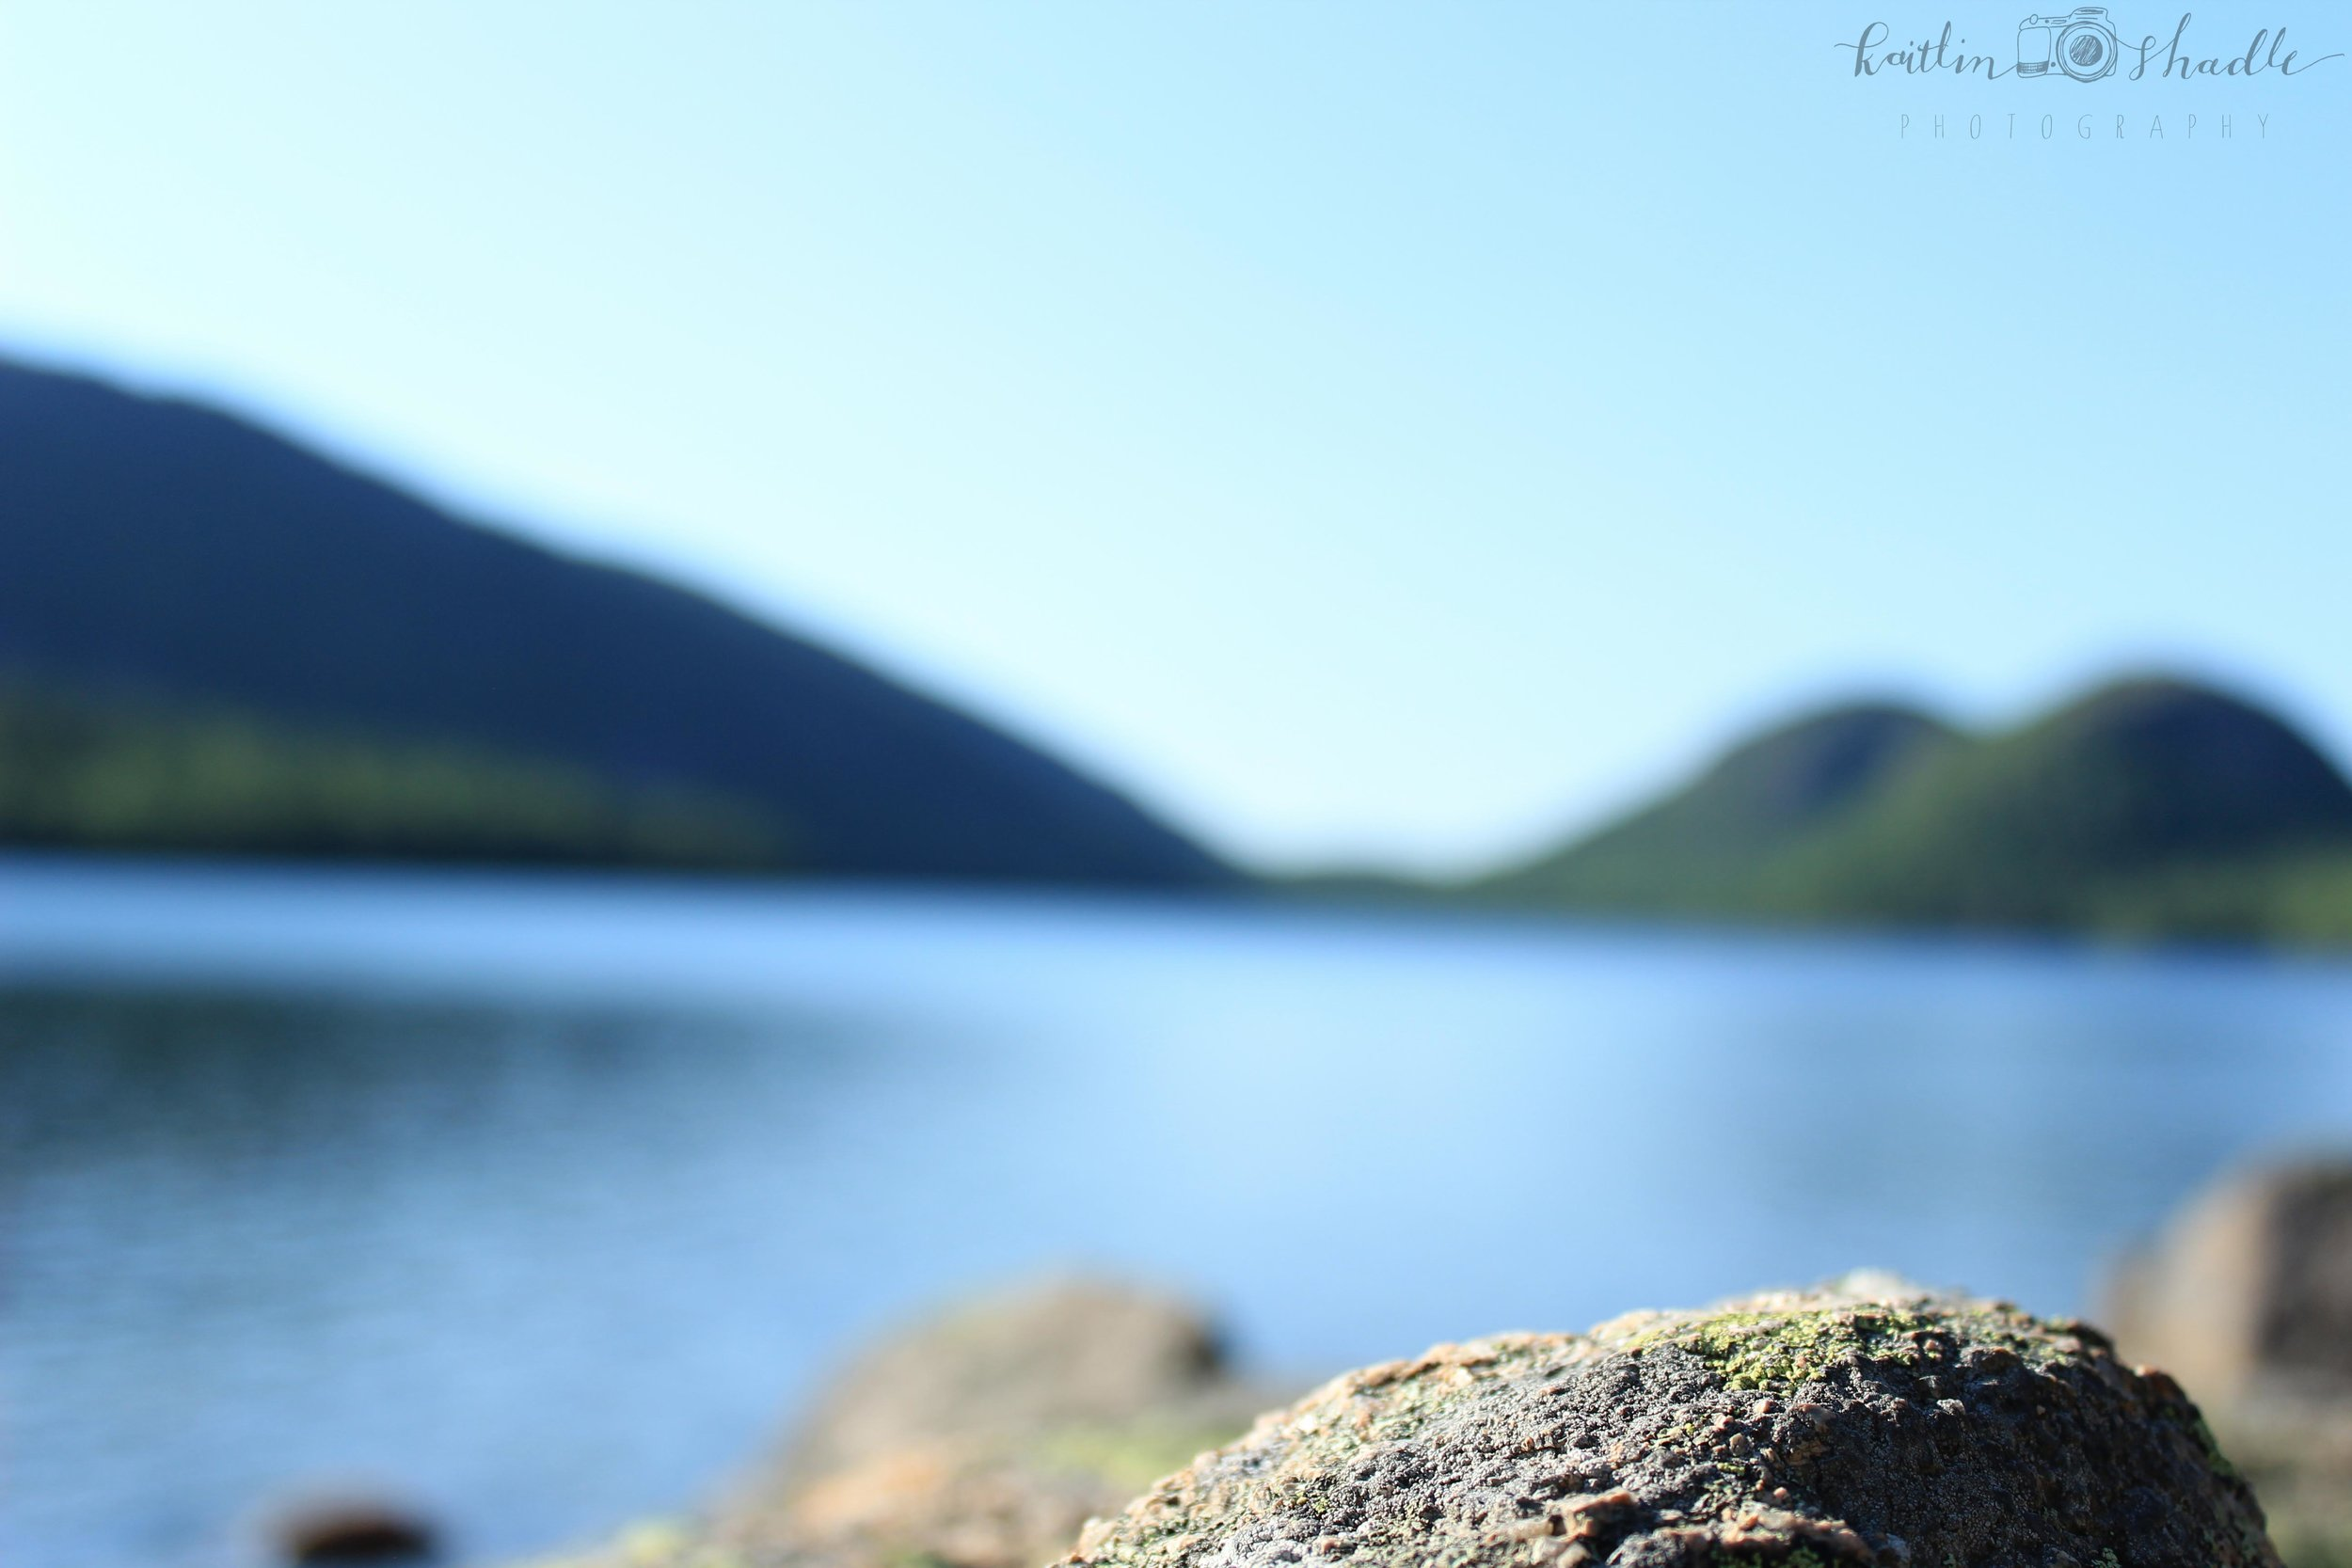 Rock at Jordan Pond